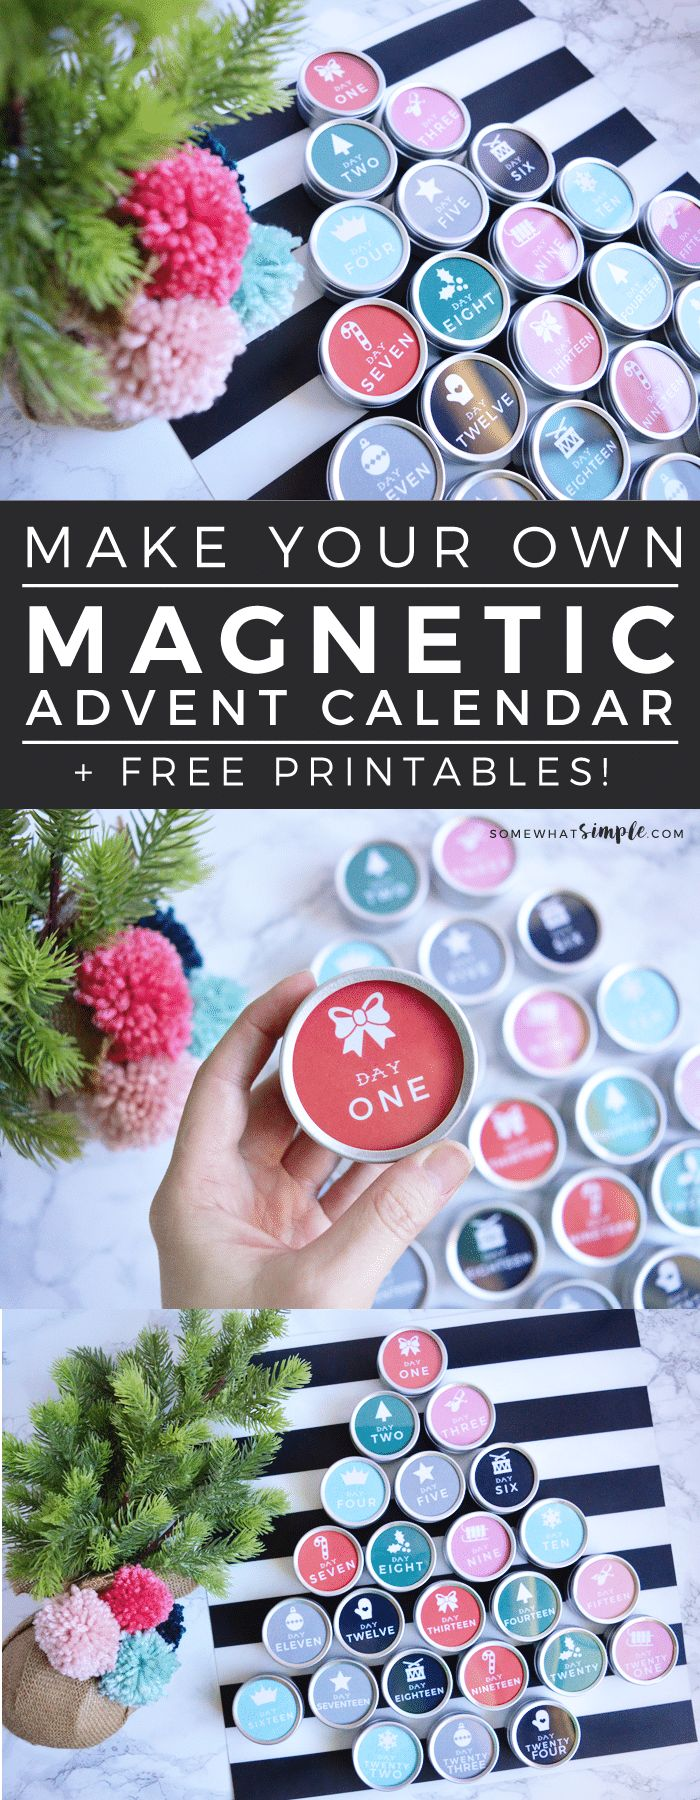 DIY Magnetic Advent Calendar with Free Printables | We can't get enough of this darling magnetic advent calendar! With a few simple supplies, you'll have a genius countdown you can't wait to use every year! #christmascountdown #diychristmasadvent